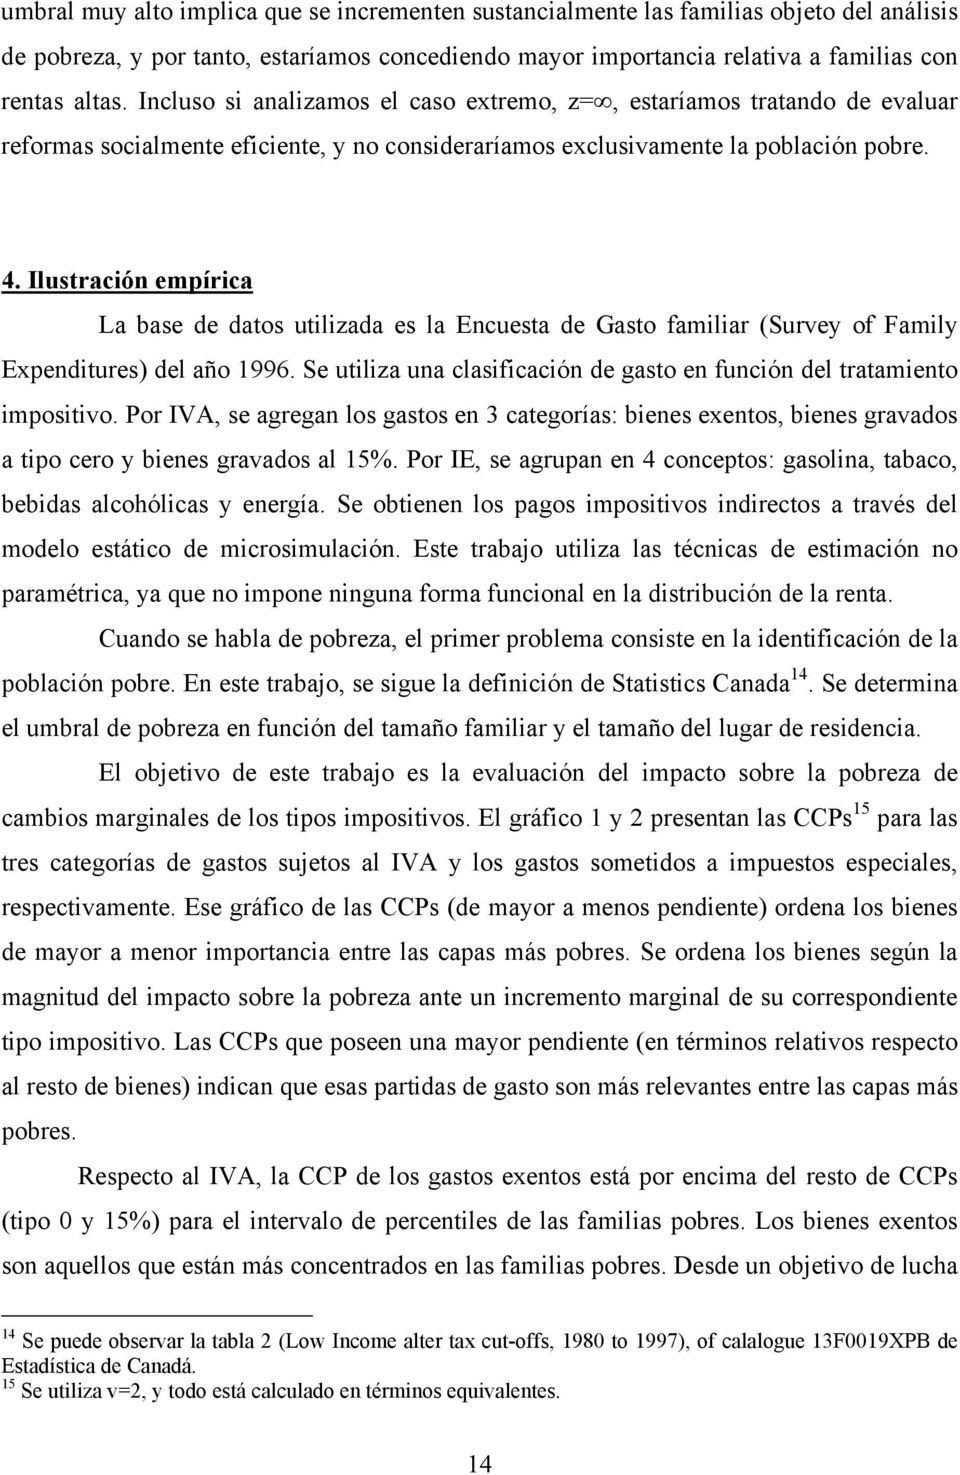 Ilustración empírica La base de datos utilizada es la Encuesta de Gasto familiar (Survey of Family Expenditures) del año 1996.